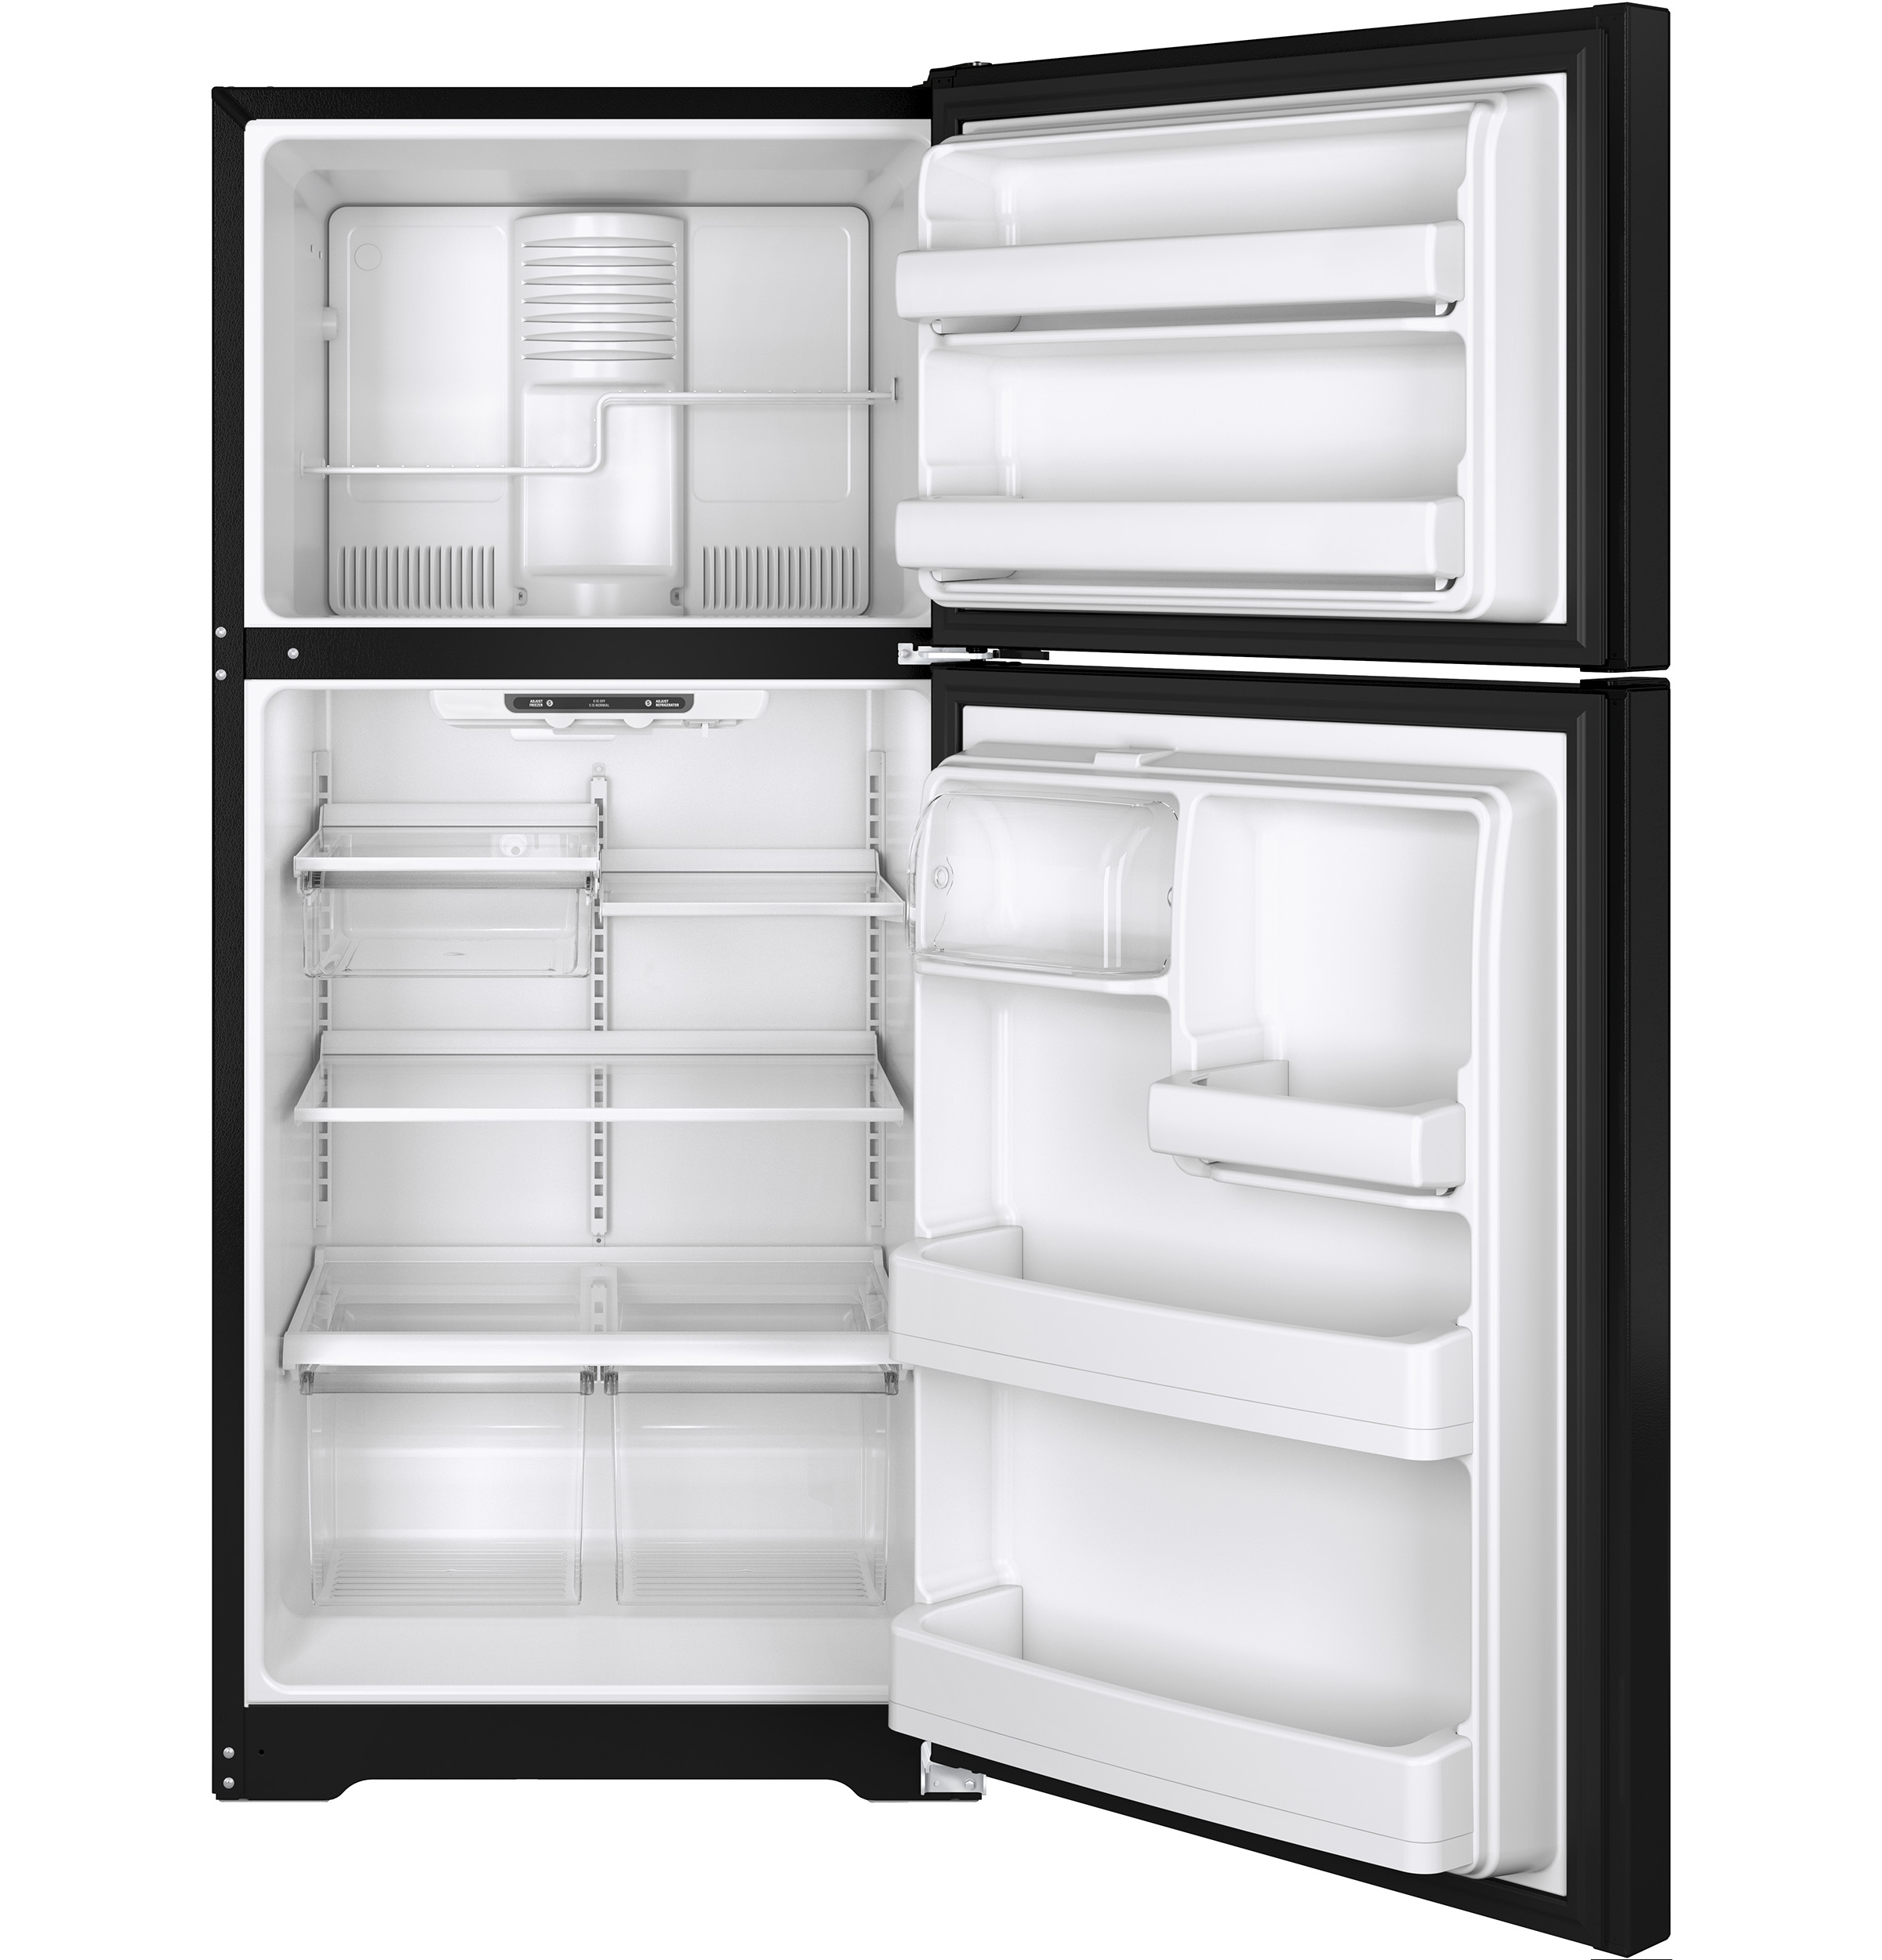 GE Appliances GTE18ITHBB 18.2 cu. ft. Top-Freezer Refrigerator - Black